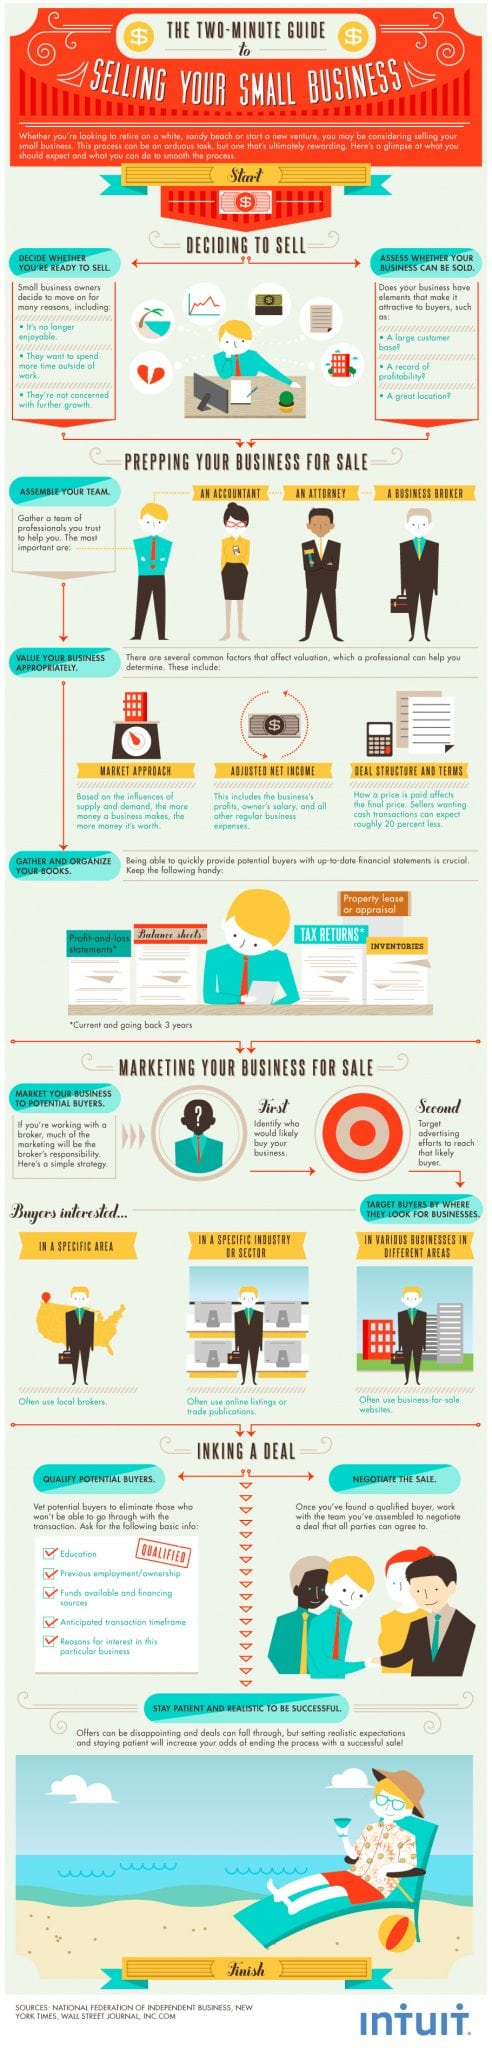 how-to-sell-business-infographic